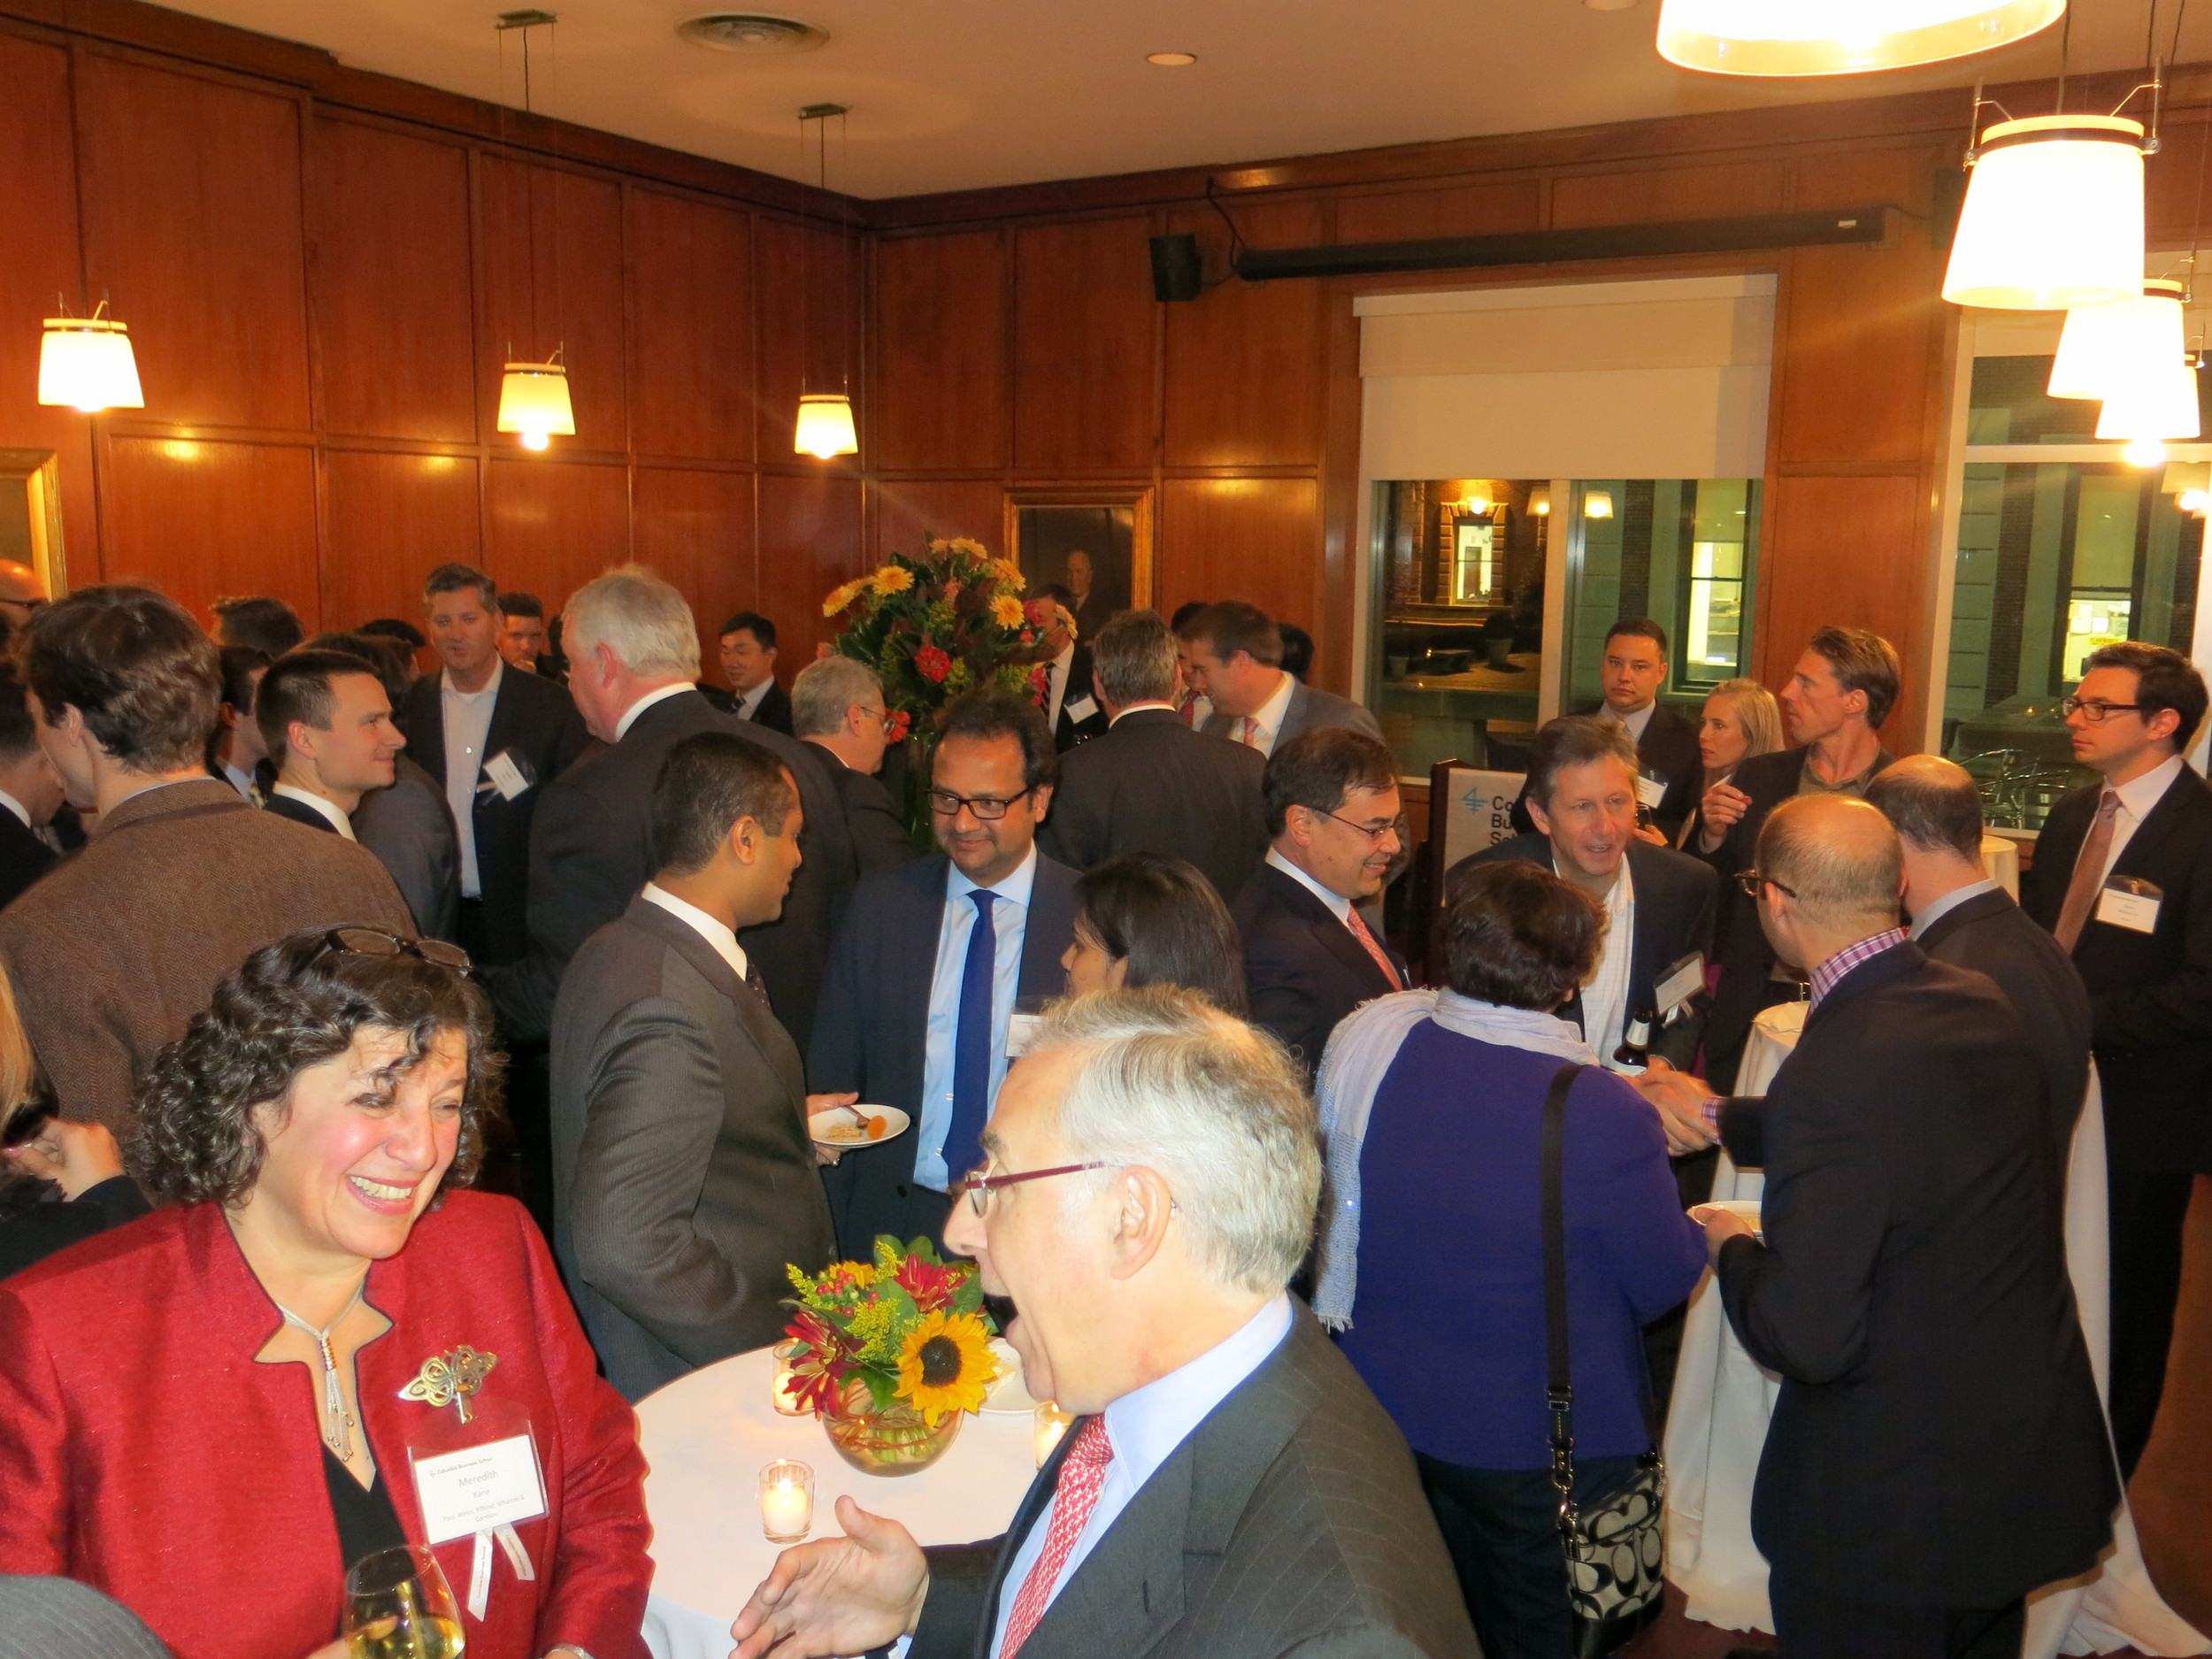 JV Negotiations Competition Reception